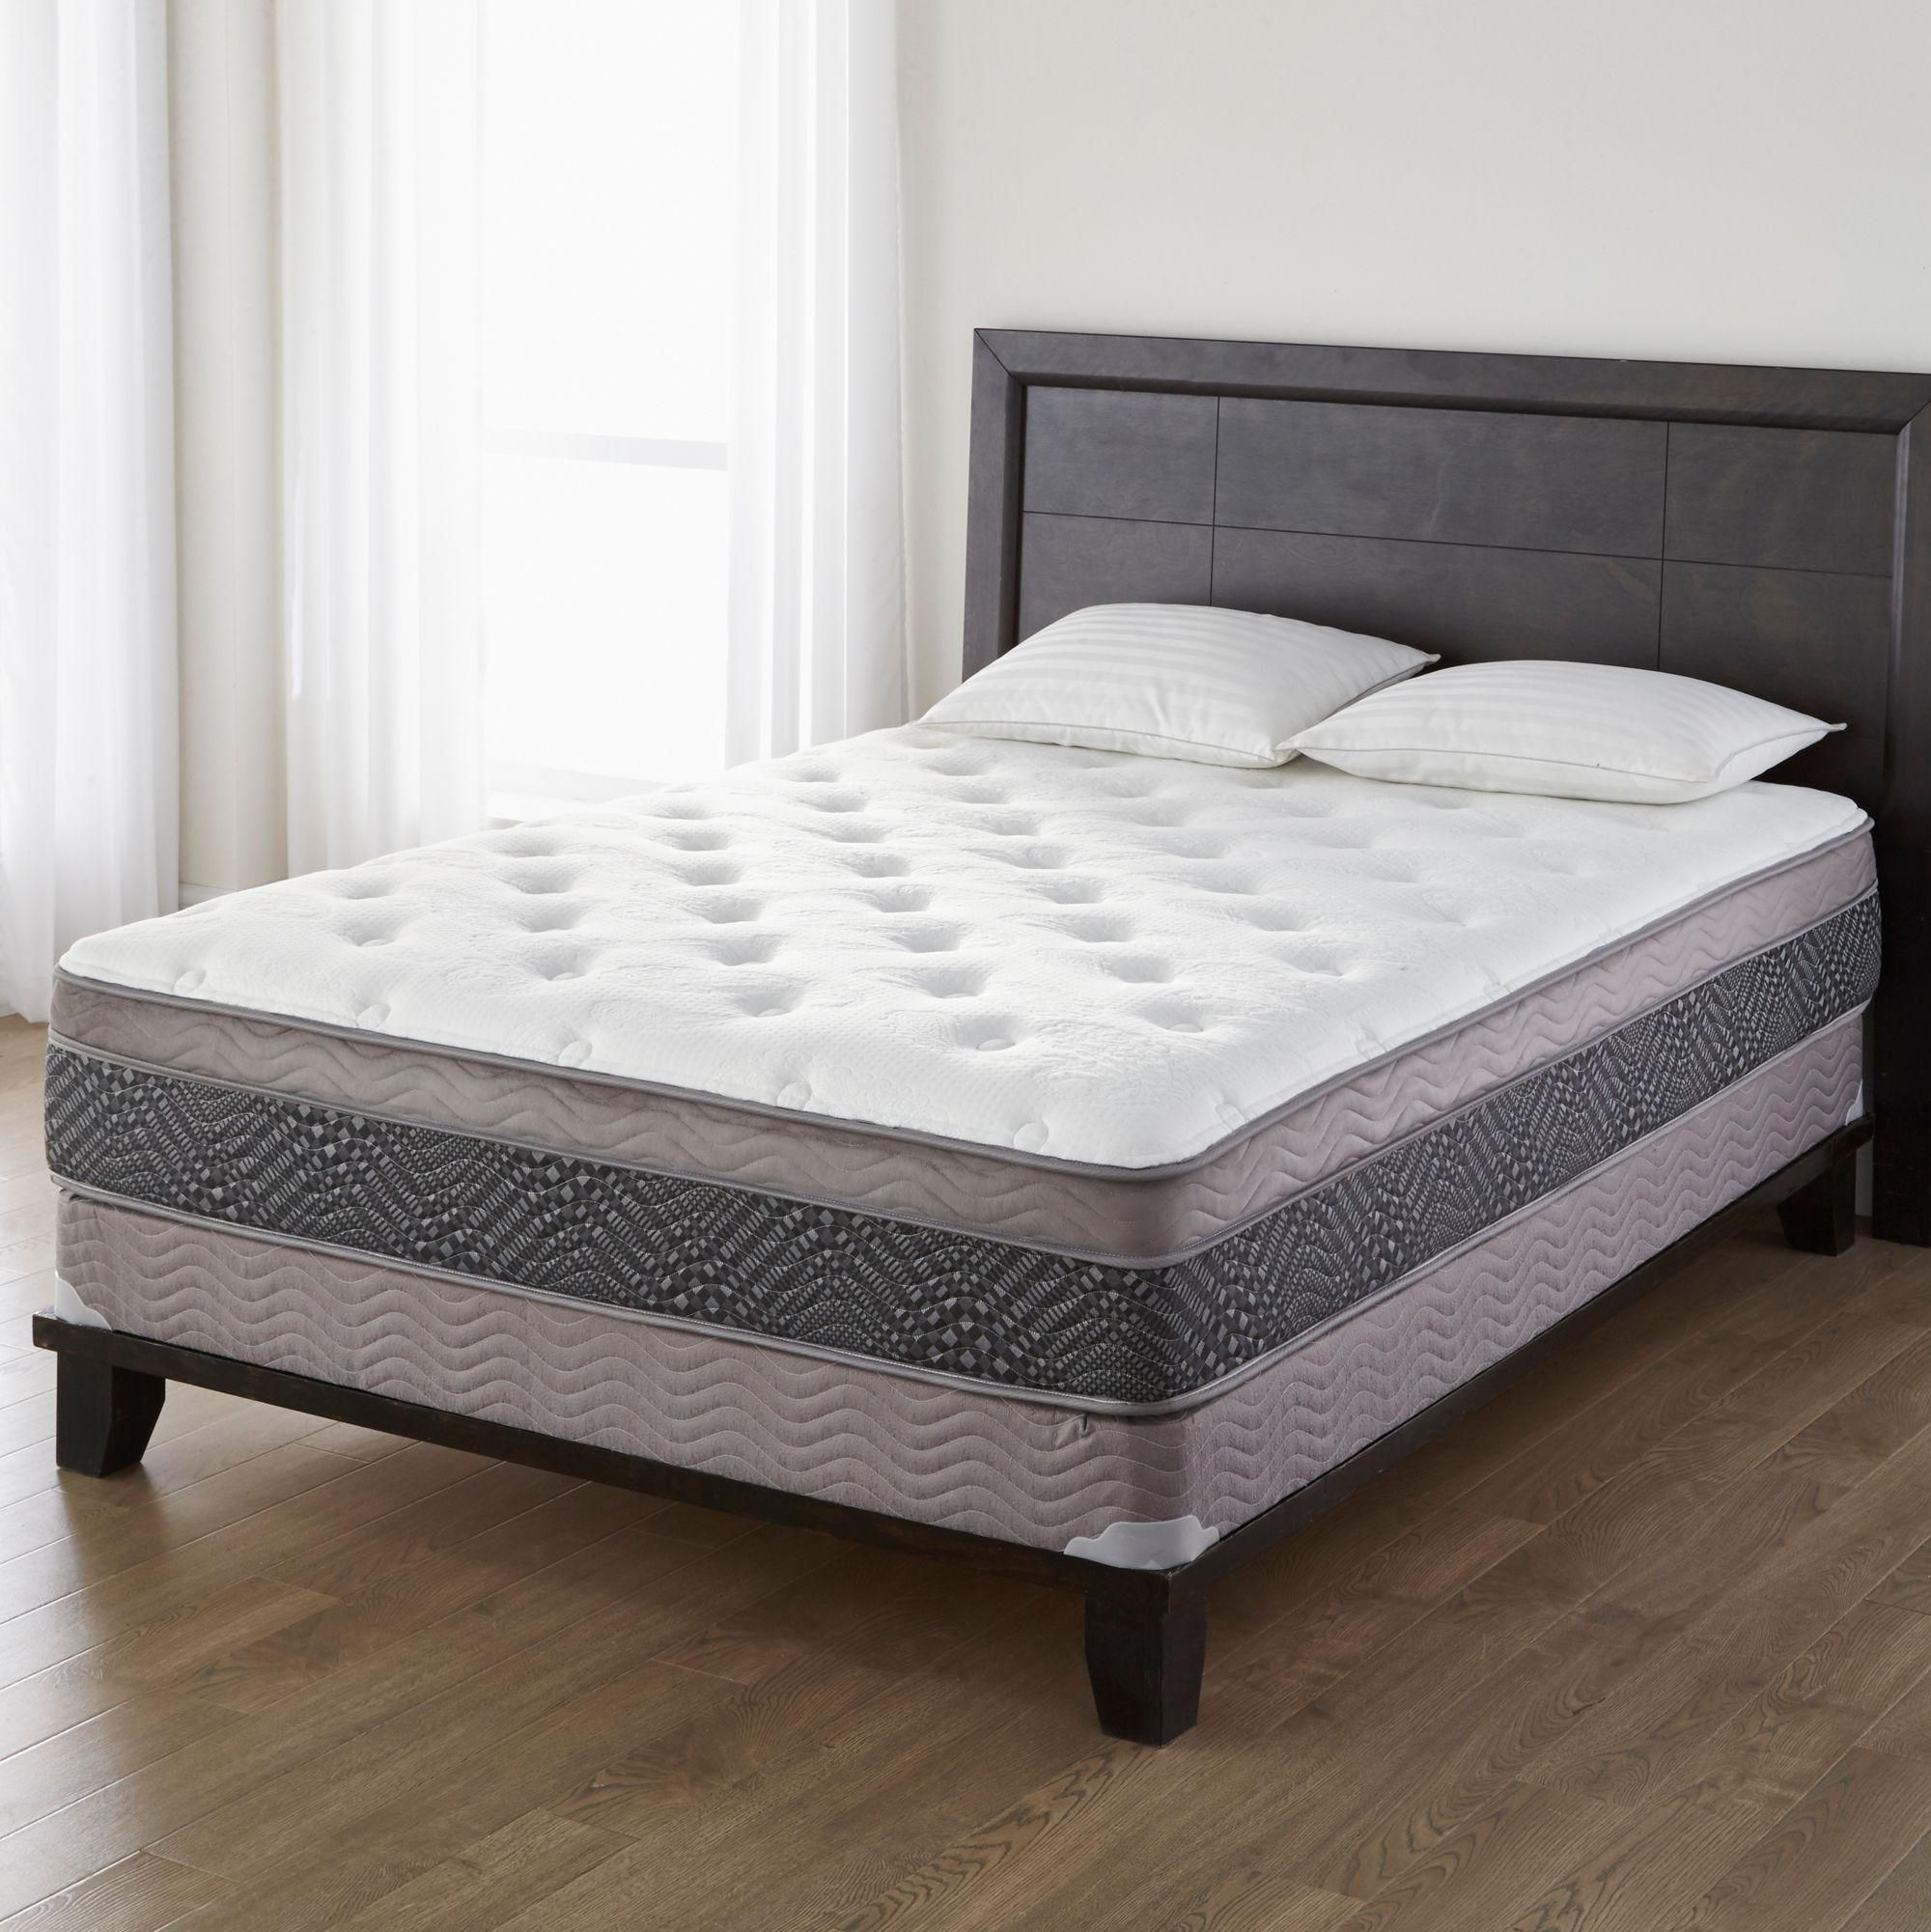 Sears Bed Frames Double Choice Of Frameworks That Are Modern Generally Depends Upon The Kind Decor Size Price Bedroo